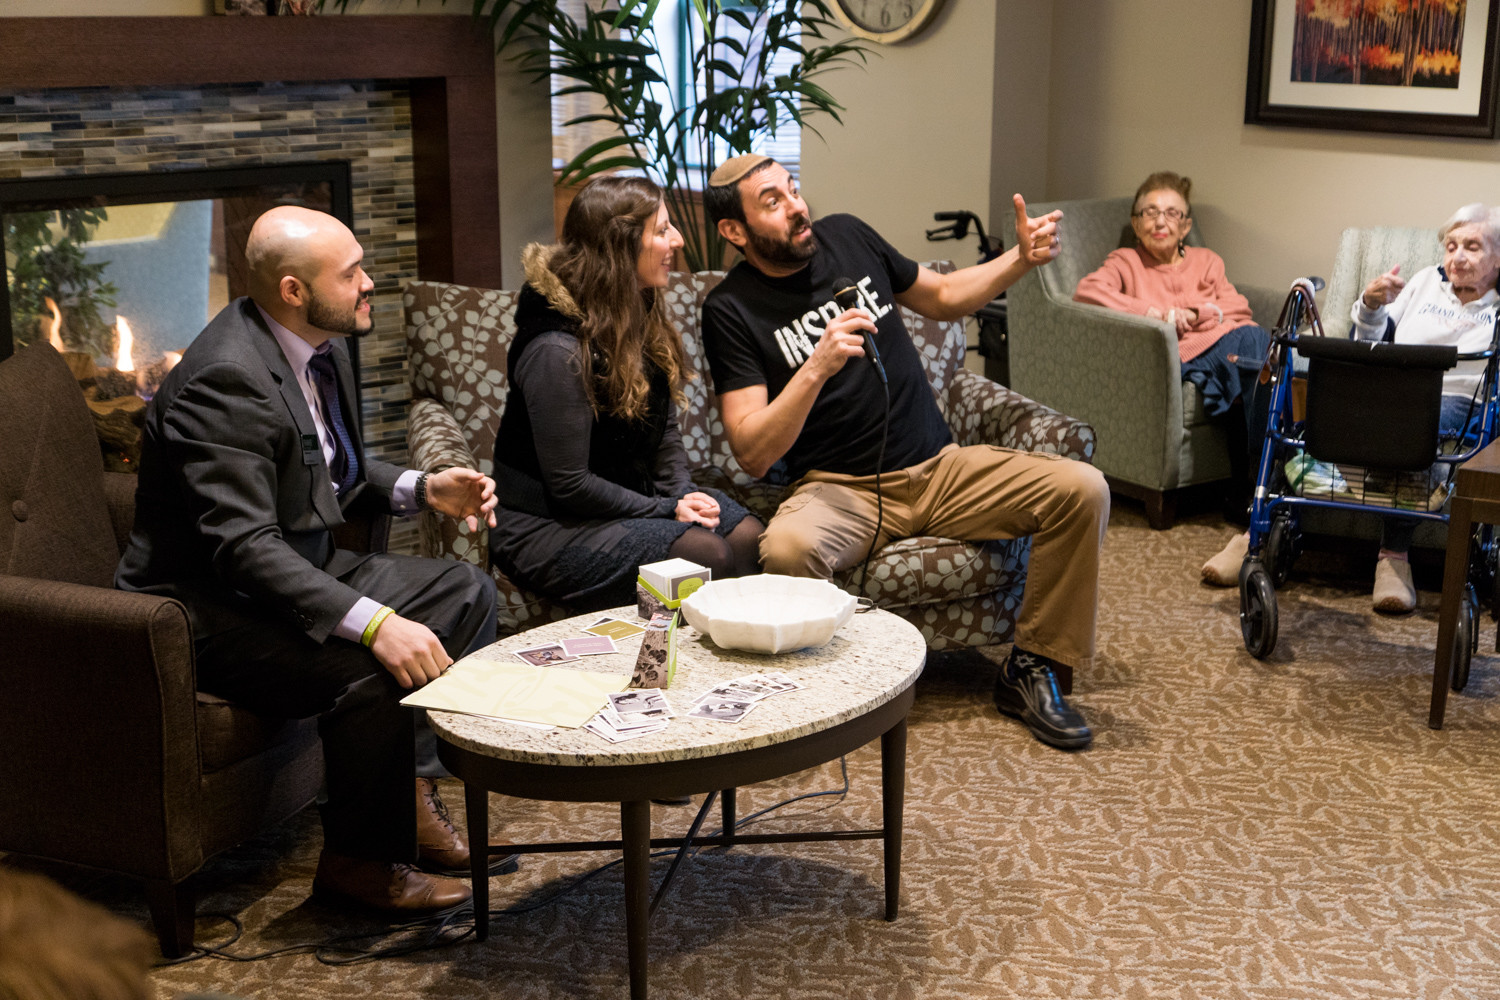 Rabbi Mordechai Walker shares a humorous story about him and his wife Rebecca encountering a bear while on a mountain and their attempt to get away, all during a storytelling event at Atria Riverdale. The senior assisted living facility created the free app Storywise where users could recall memories prompted by questions from the app. It's available on iTunes.